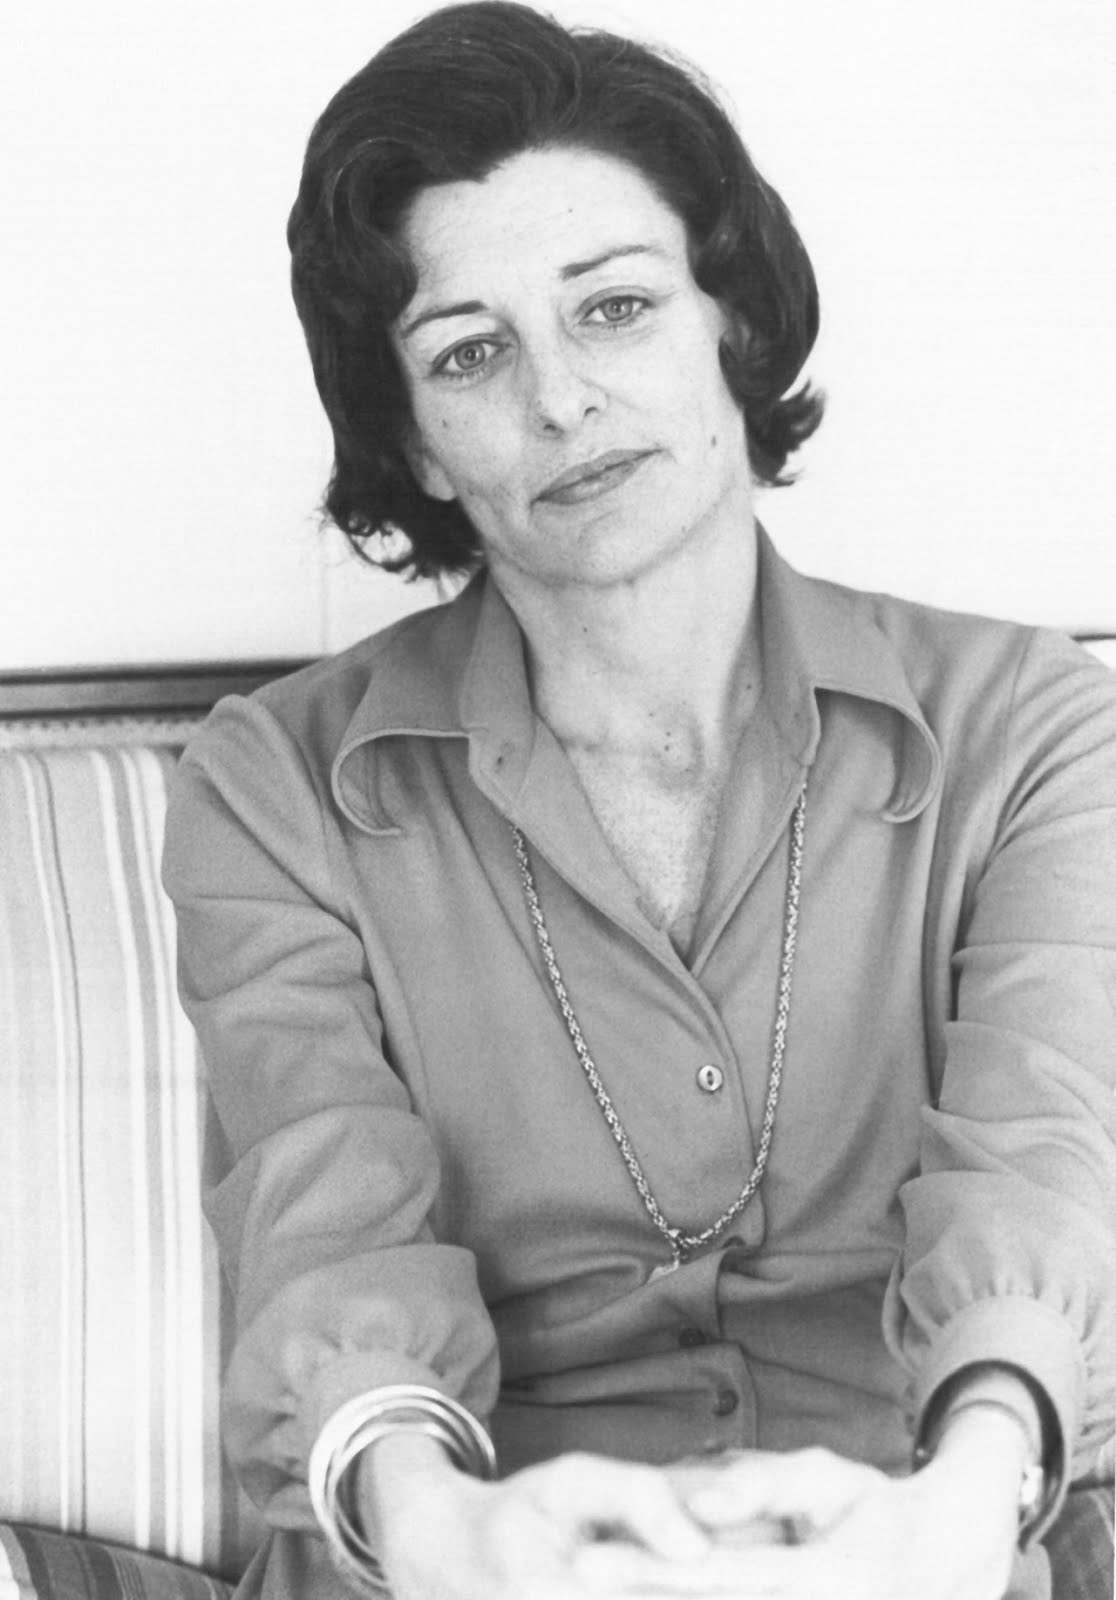 anne sexton The anne sexton: poems community note includes chapter-by-chapter summary and analysis, character list, theme list, historical context, author biography and quizzes written by community members like you.